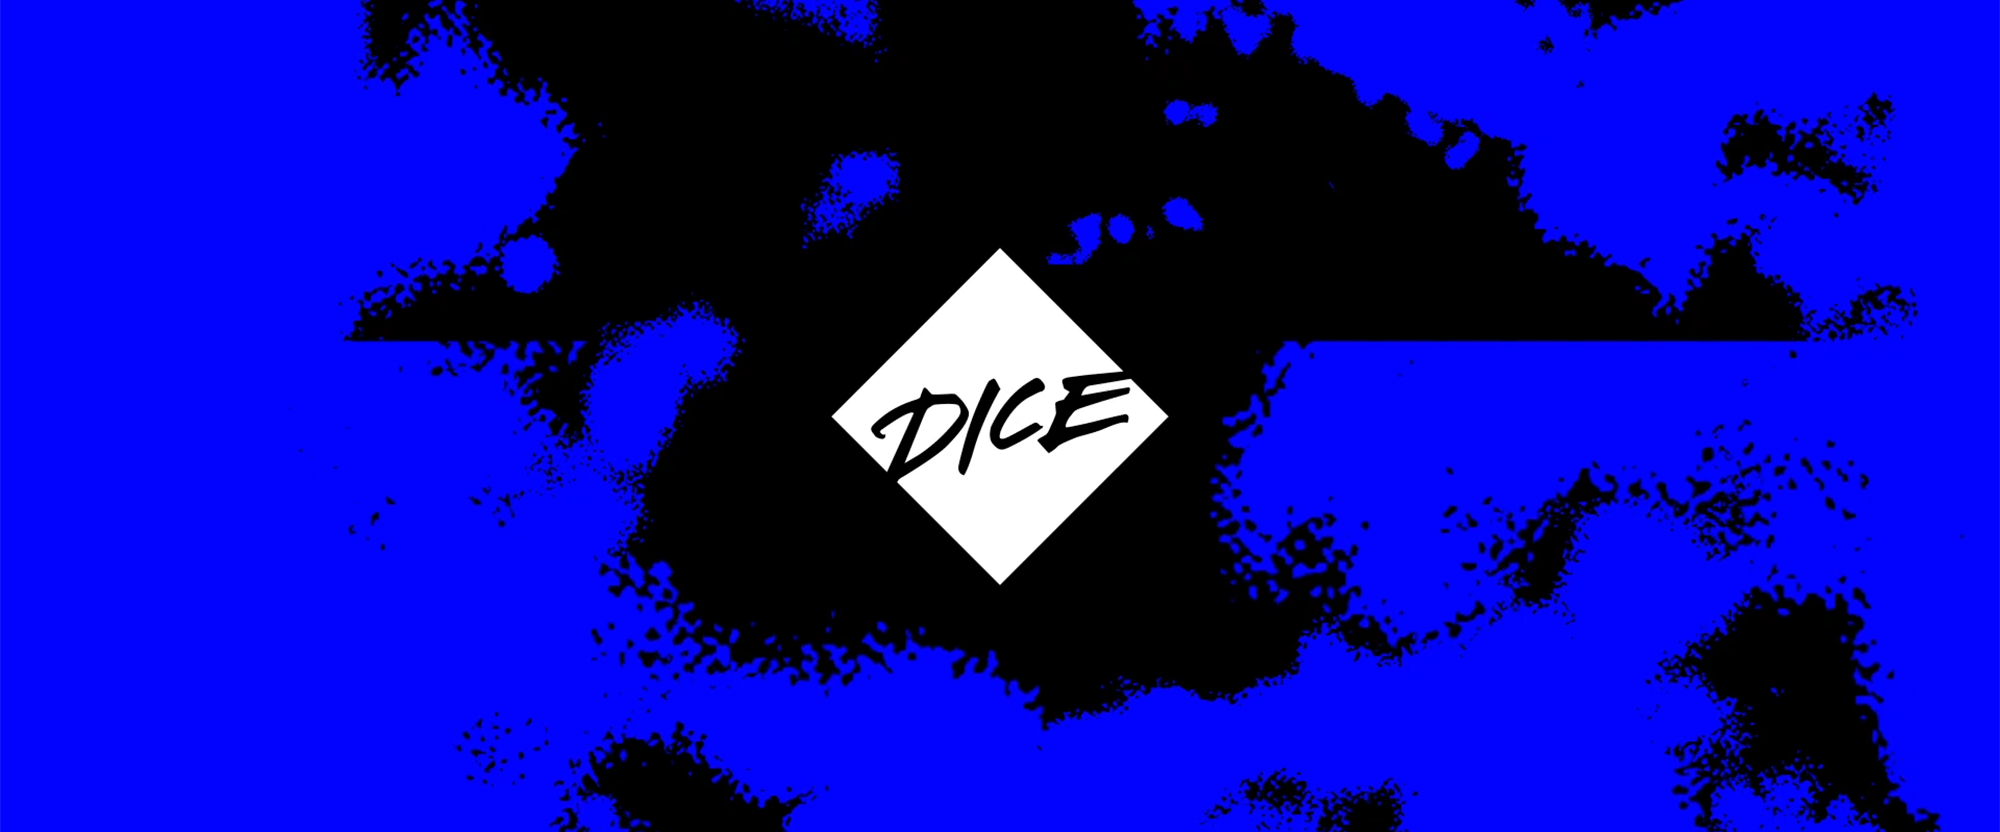 New Identity for DICE done In-house